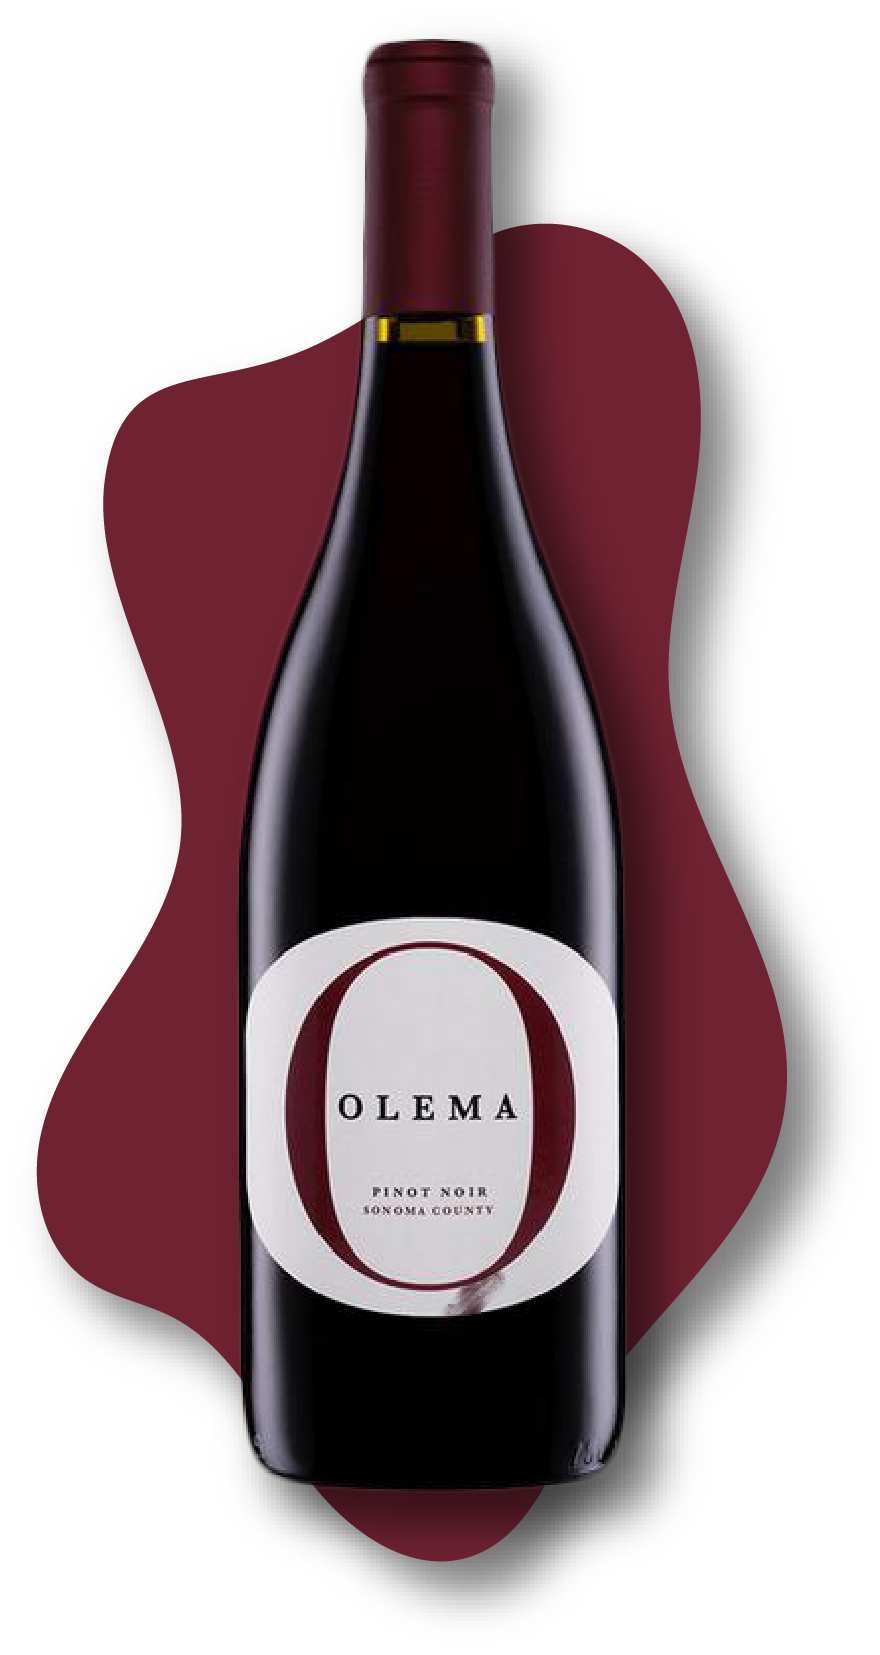 Amici, Olema, Pinot Noir, Sonoma County, California, 2019 Online Wine Class Image at learnaboutwine.com